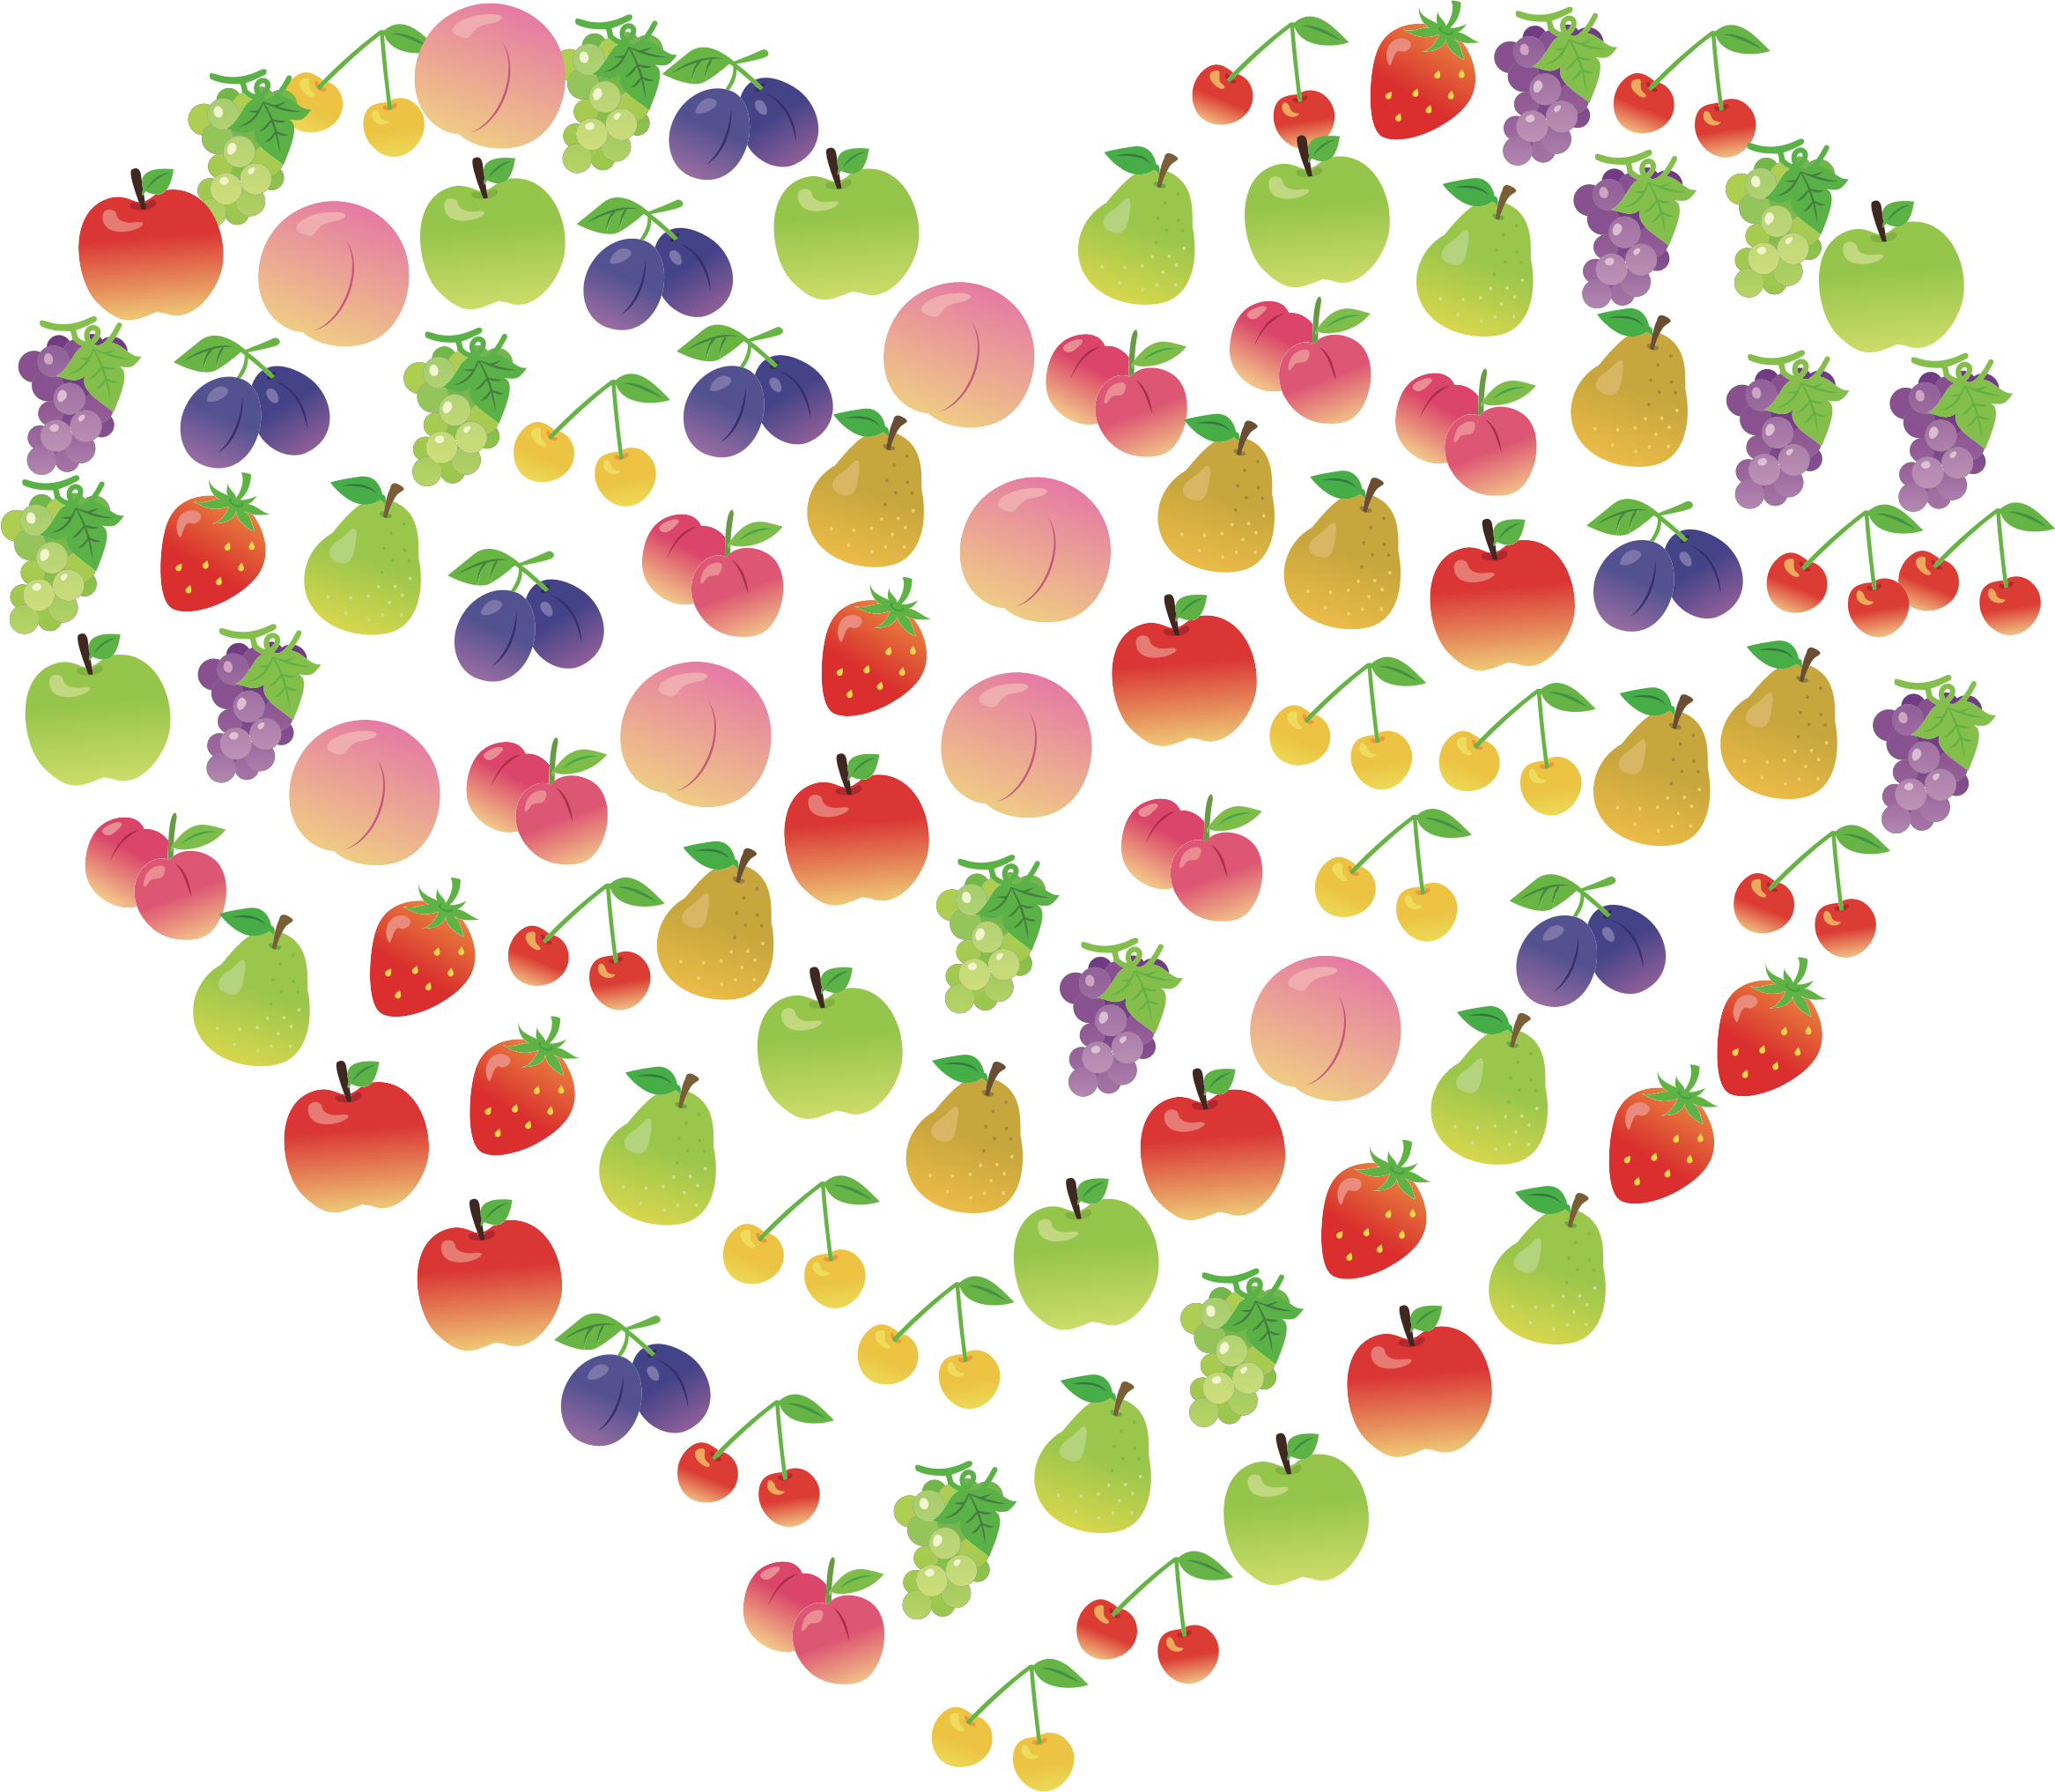 Heart clipart fruit. Fruits ii big image